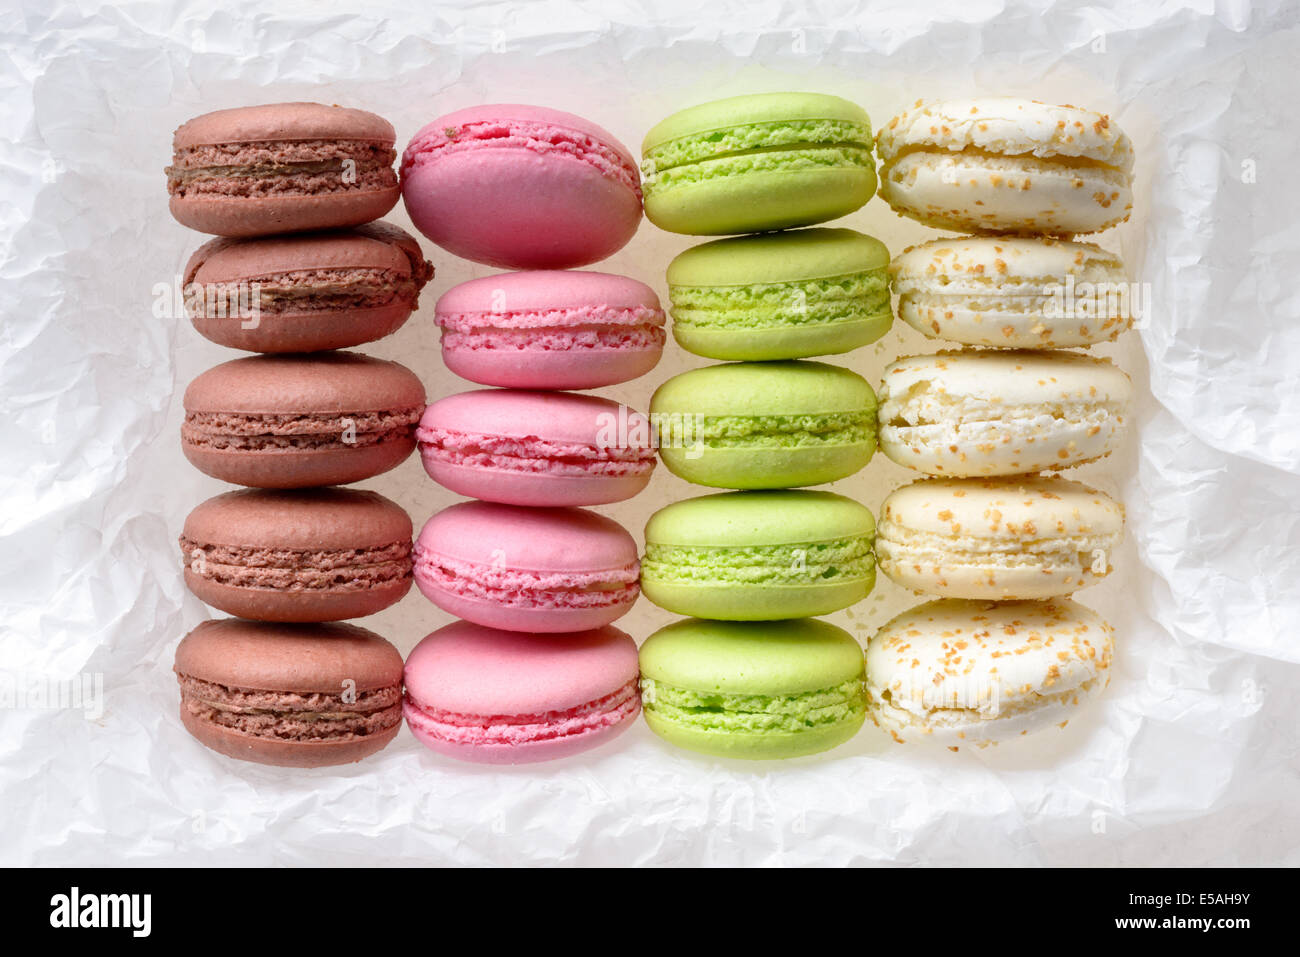 Food: multicolored macarons assortment, arranged on white crumpled paper, isolated on white background - Stock Image